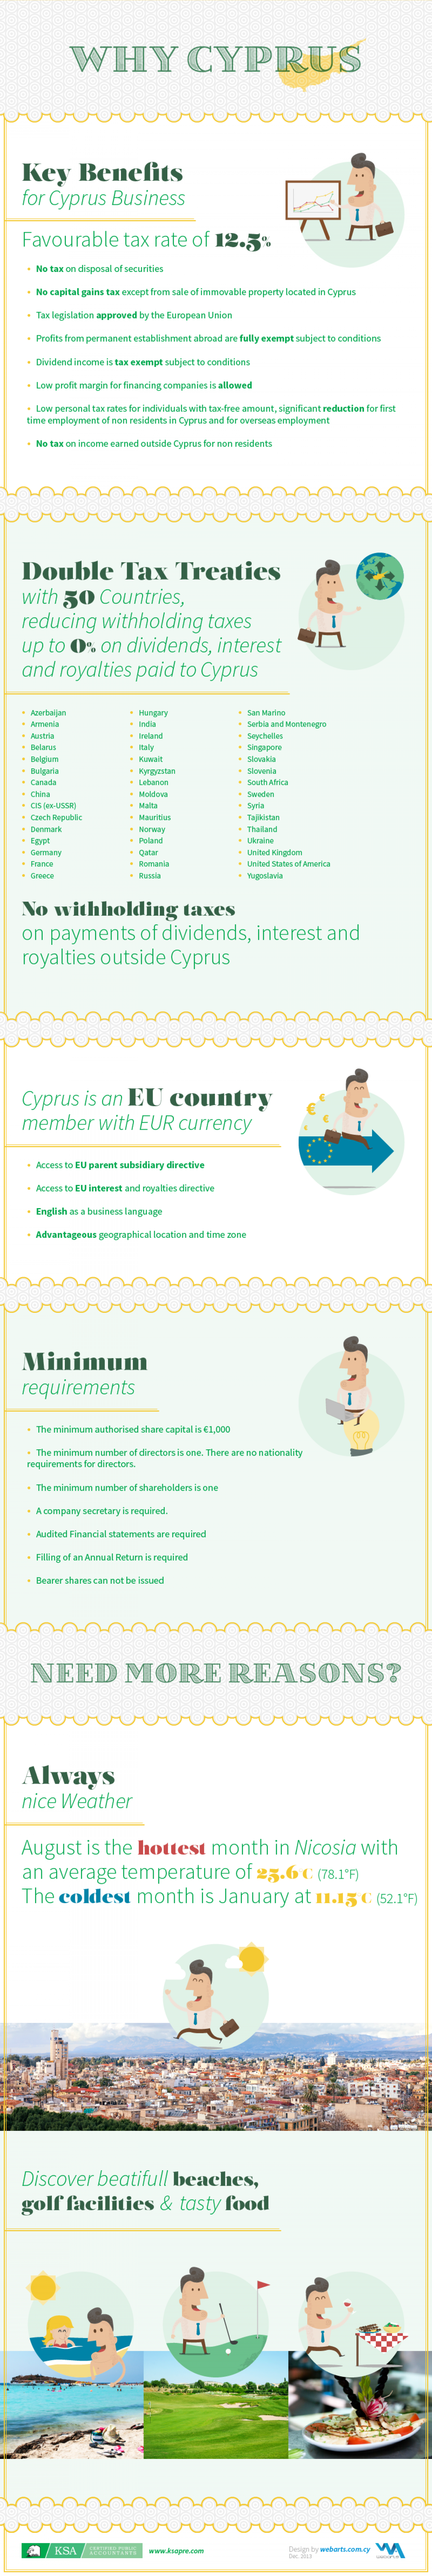 Key benefits of Doing Business in Cyprus Infographic